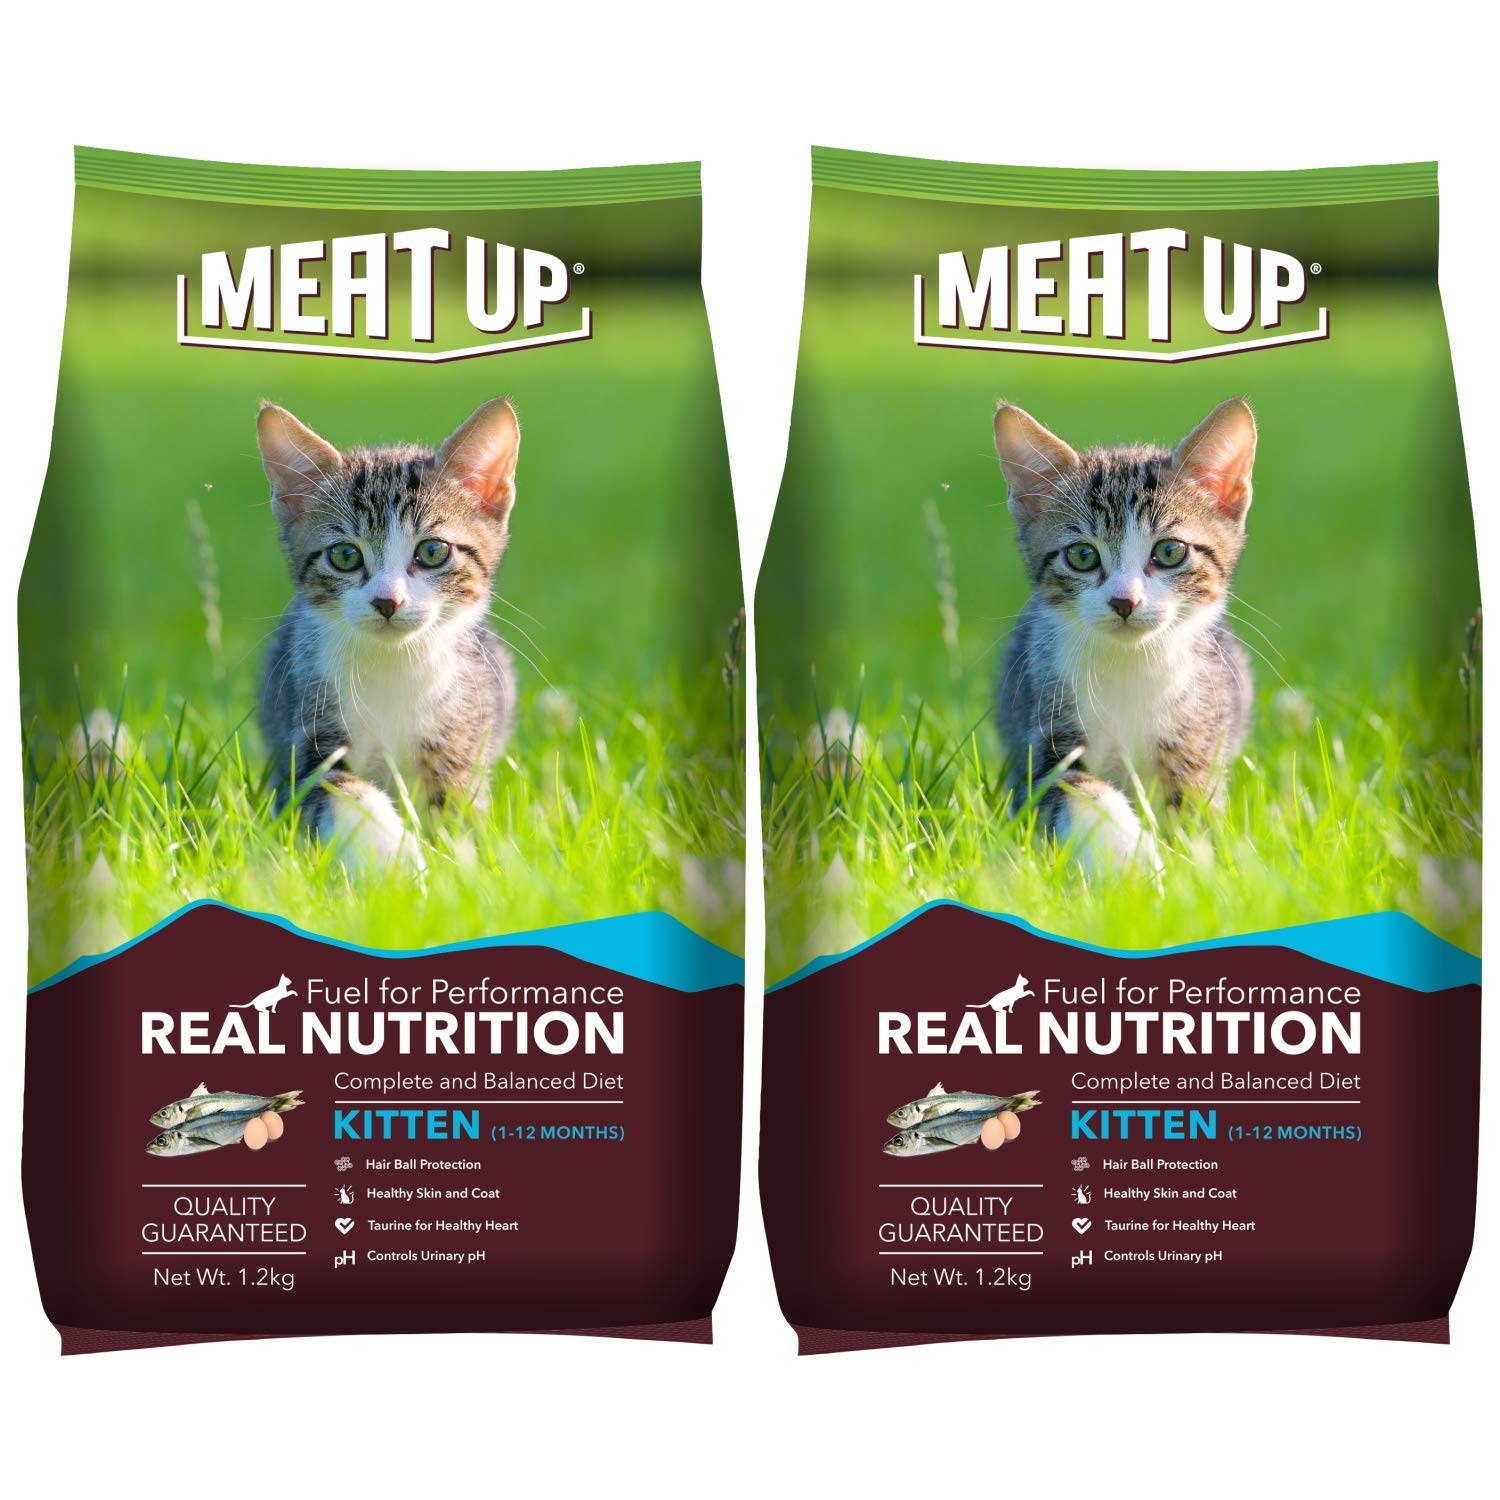 Meat Up Kitten Food